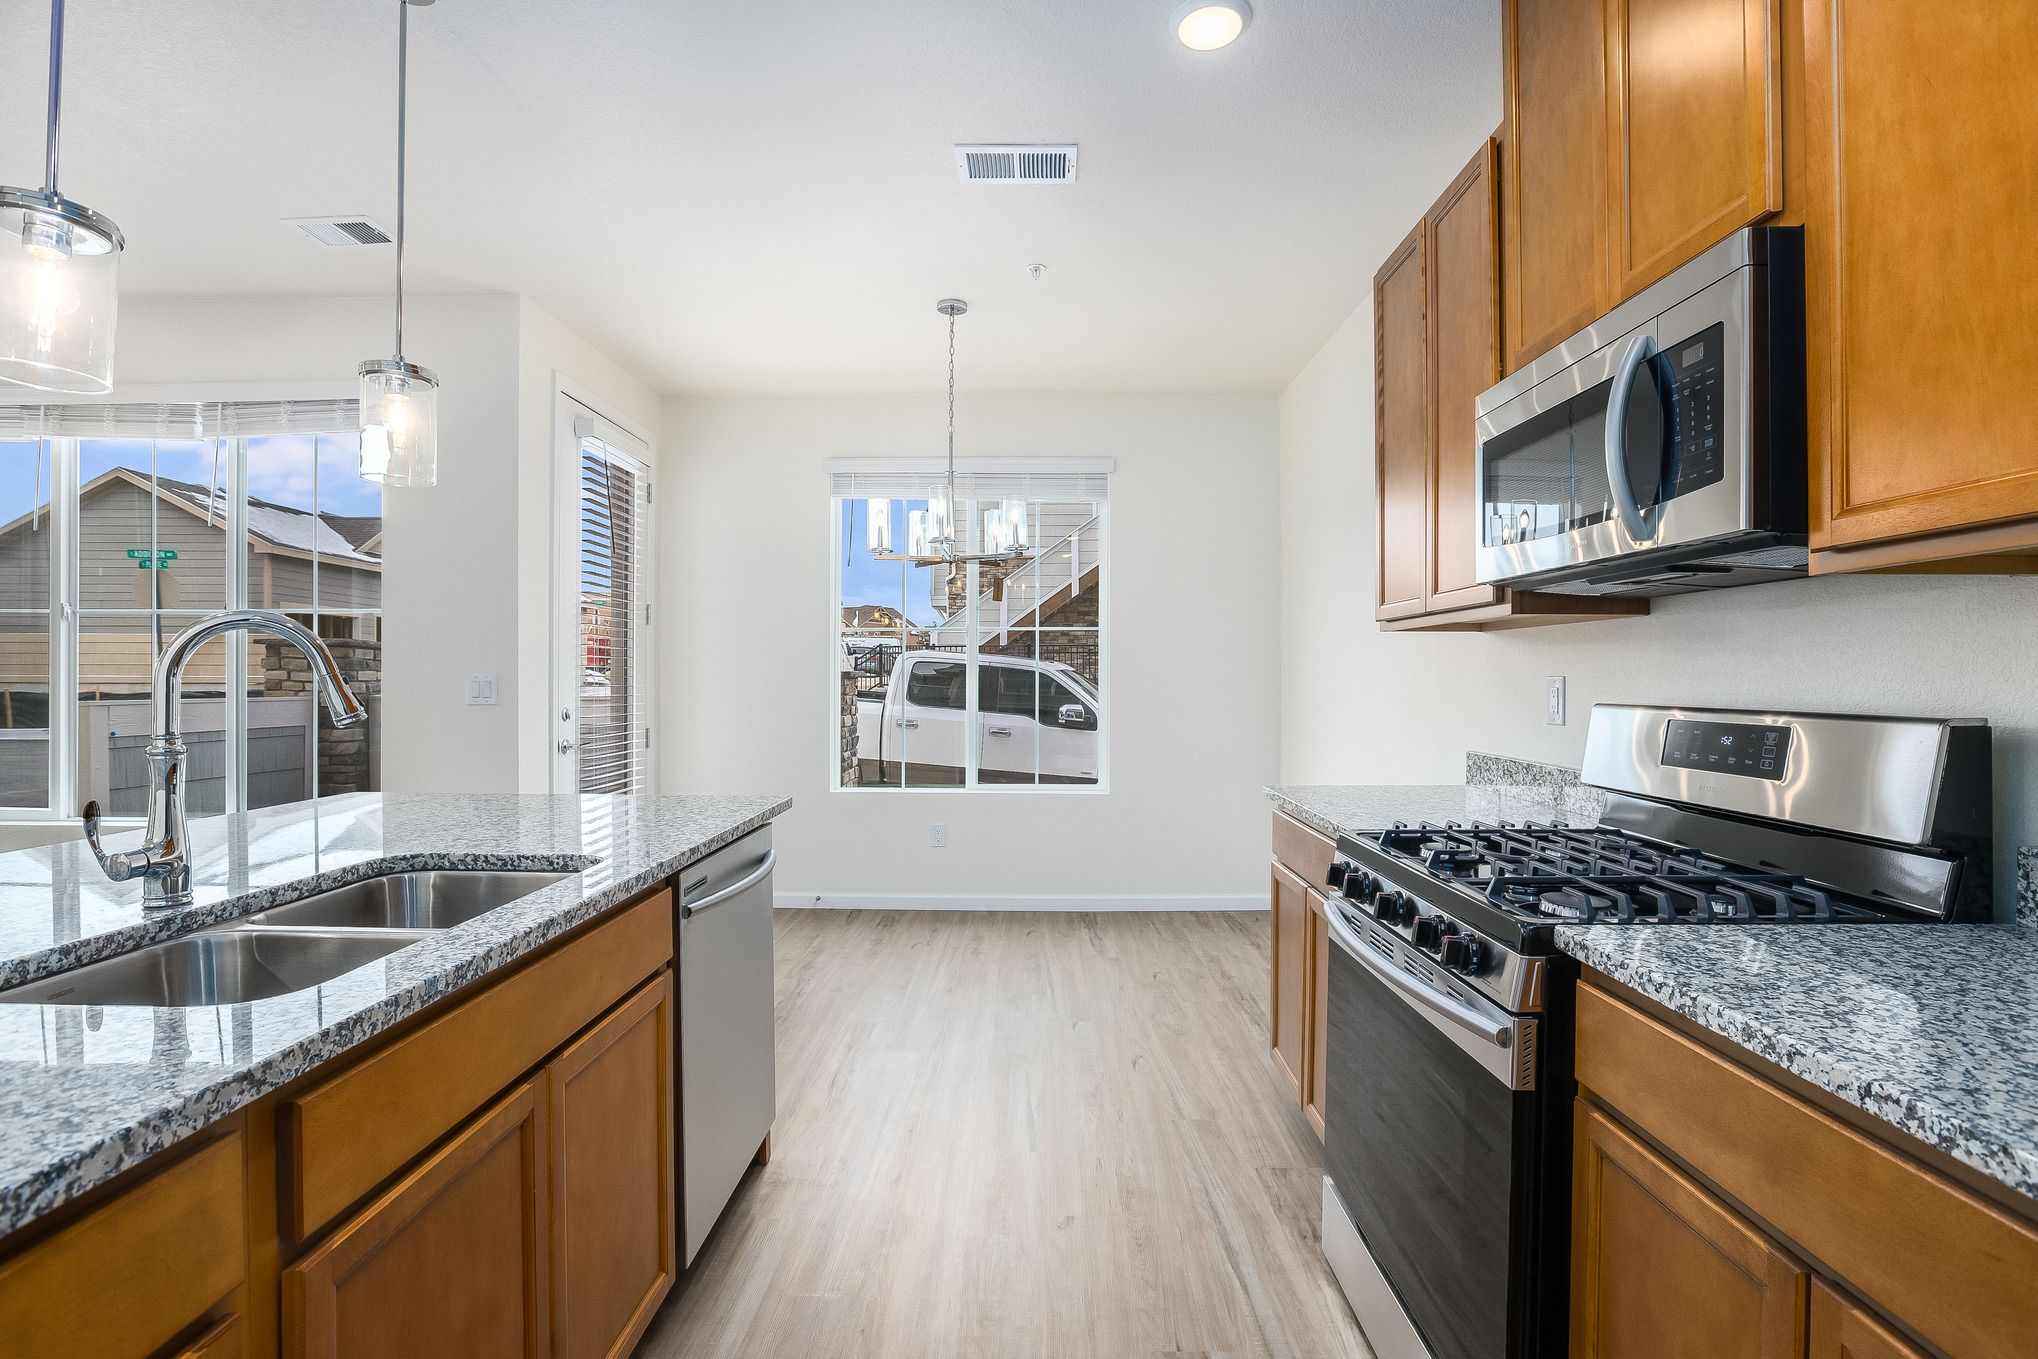 Kitchen featured in the Kelly By Lokal Homes in Denver, CO